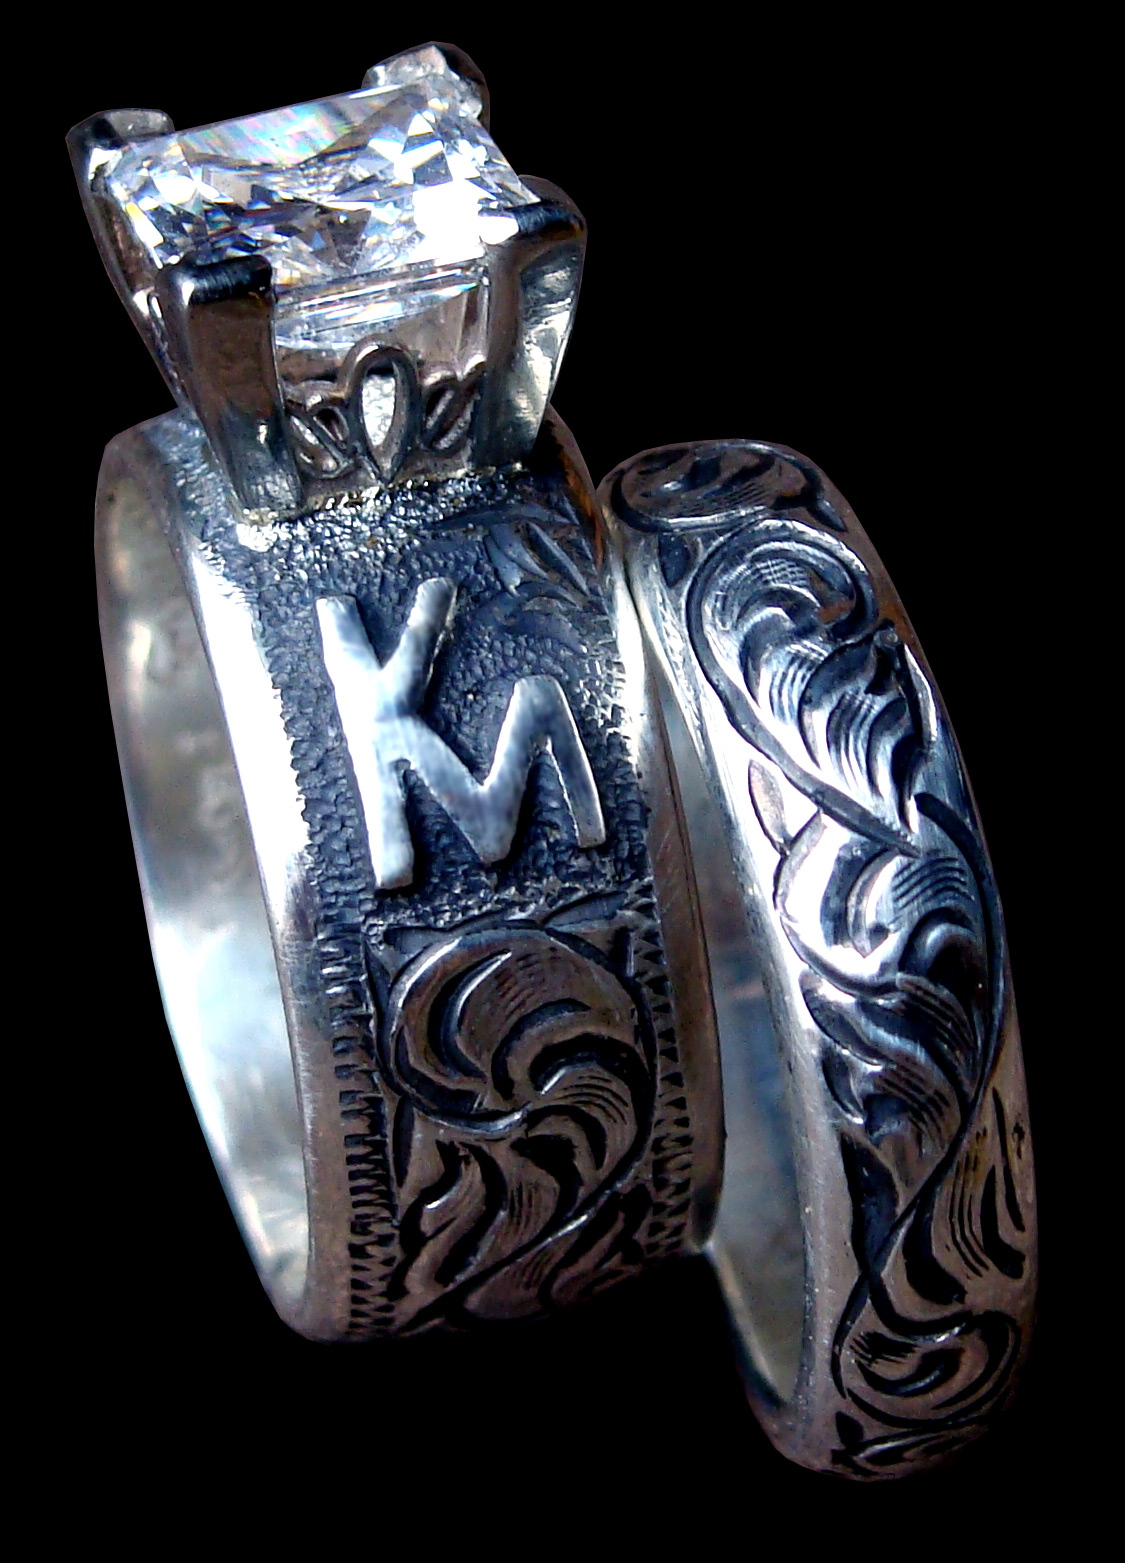 mens men cowboy promise bowl sport engagement jewelry vintage wedding replica super cowboys big cool rings diamond cuodqhw dallas new fans retro